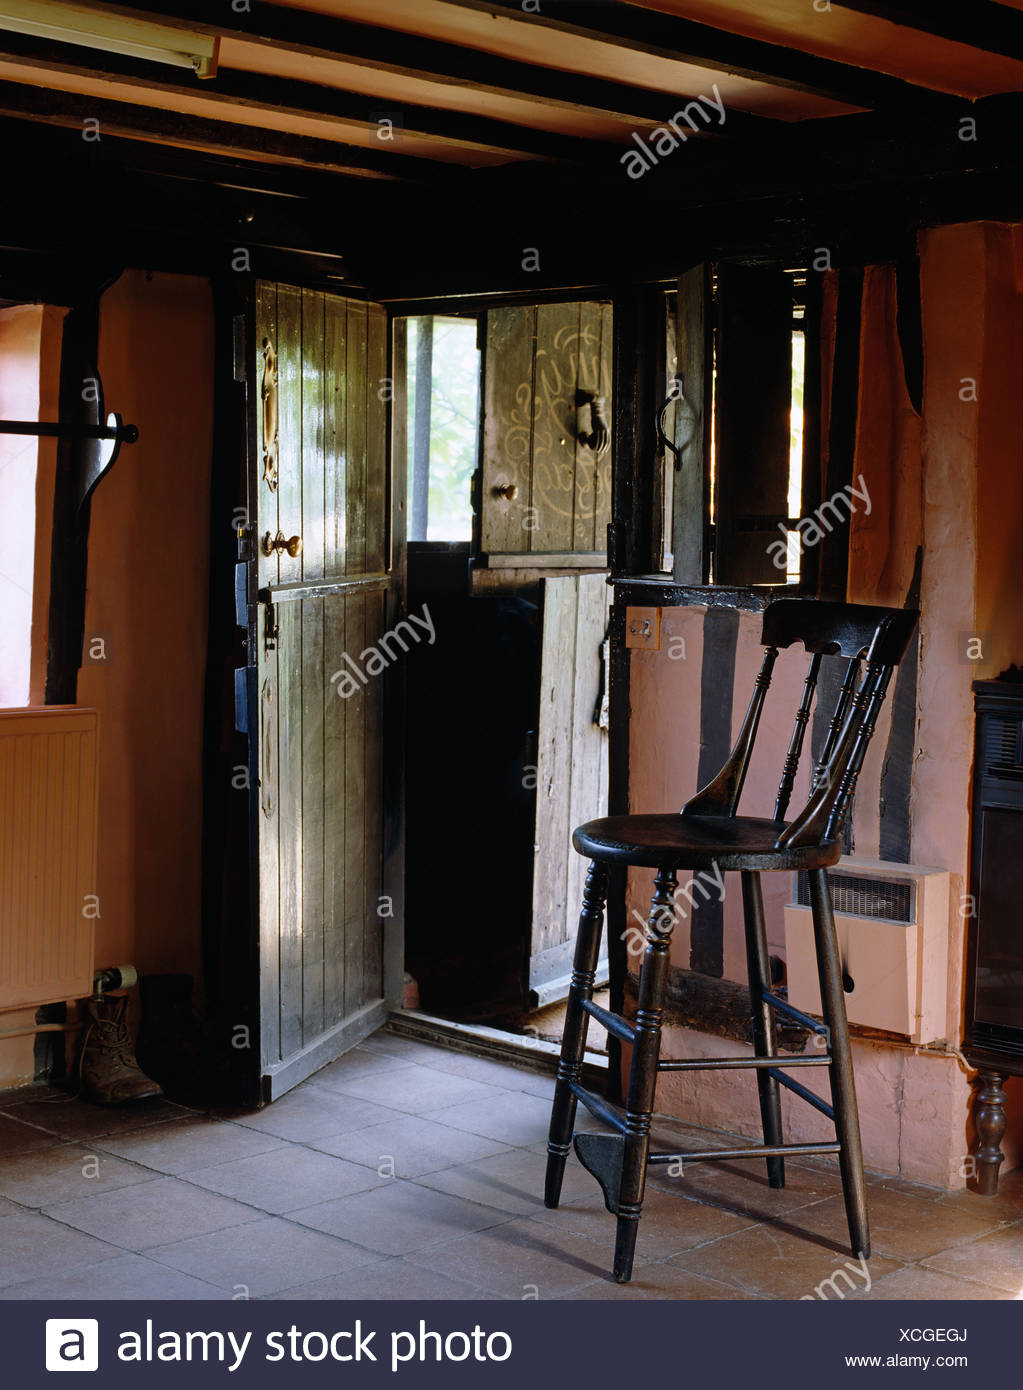 Antique High Chair In Tudor Cottage Hall With Stable Door And Tiled